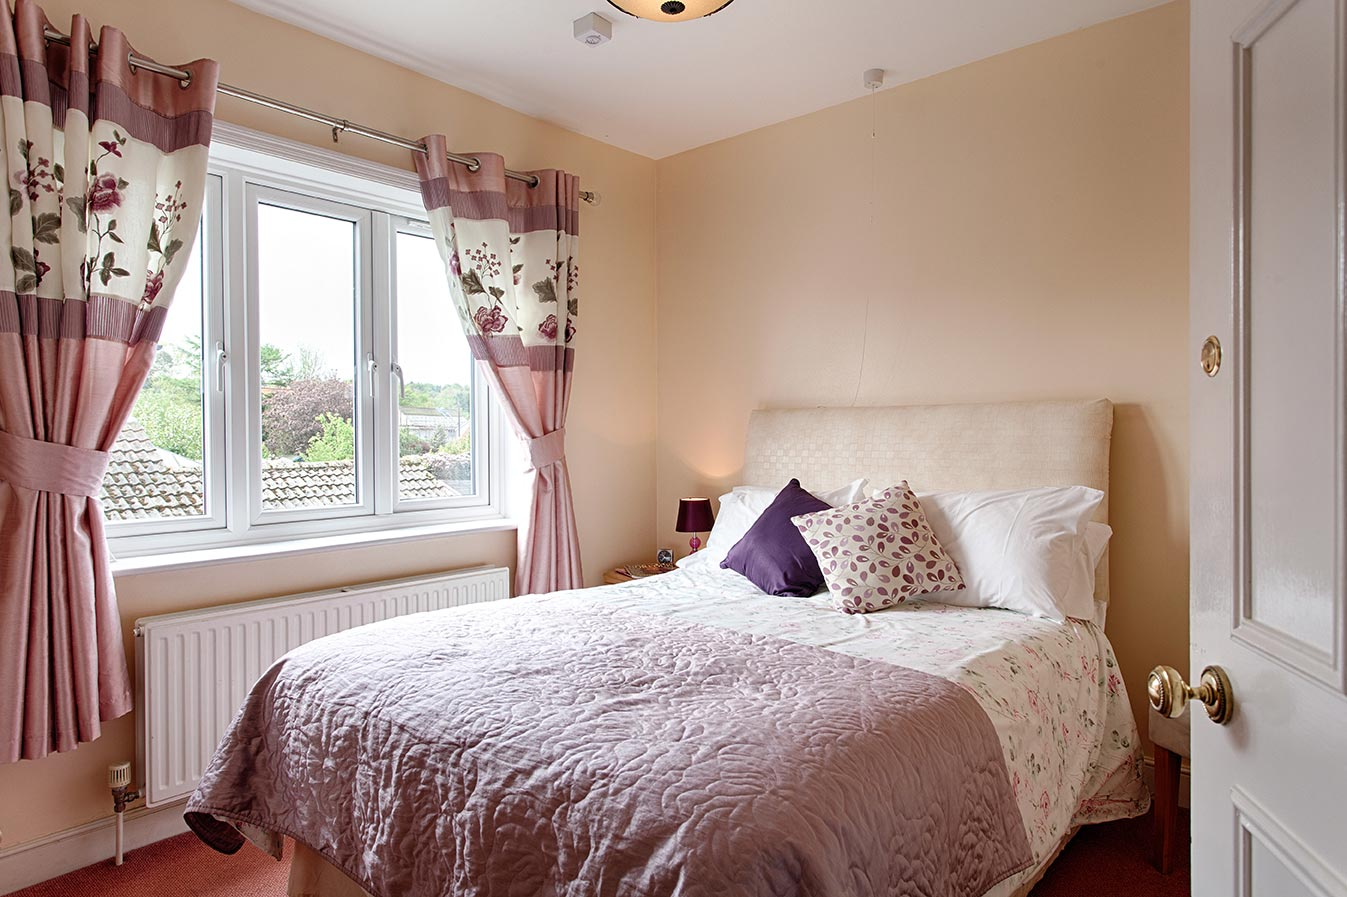 4 star guesthouse in Cromer.